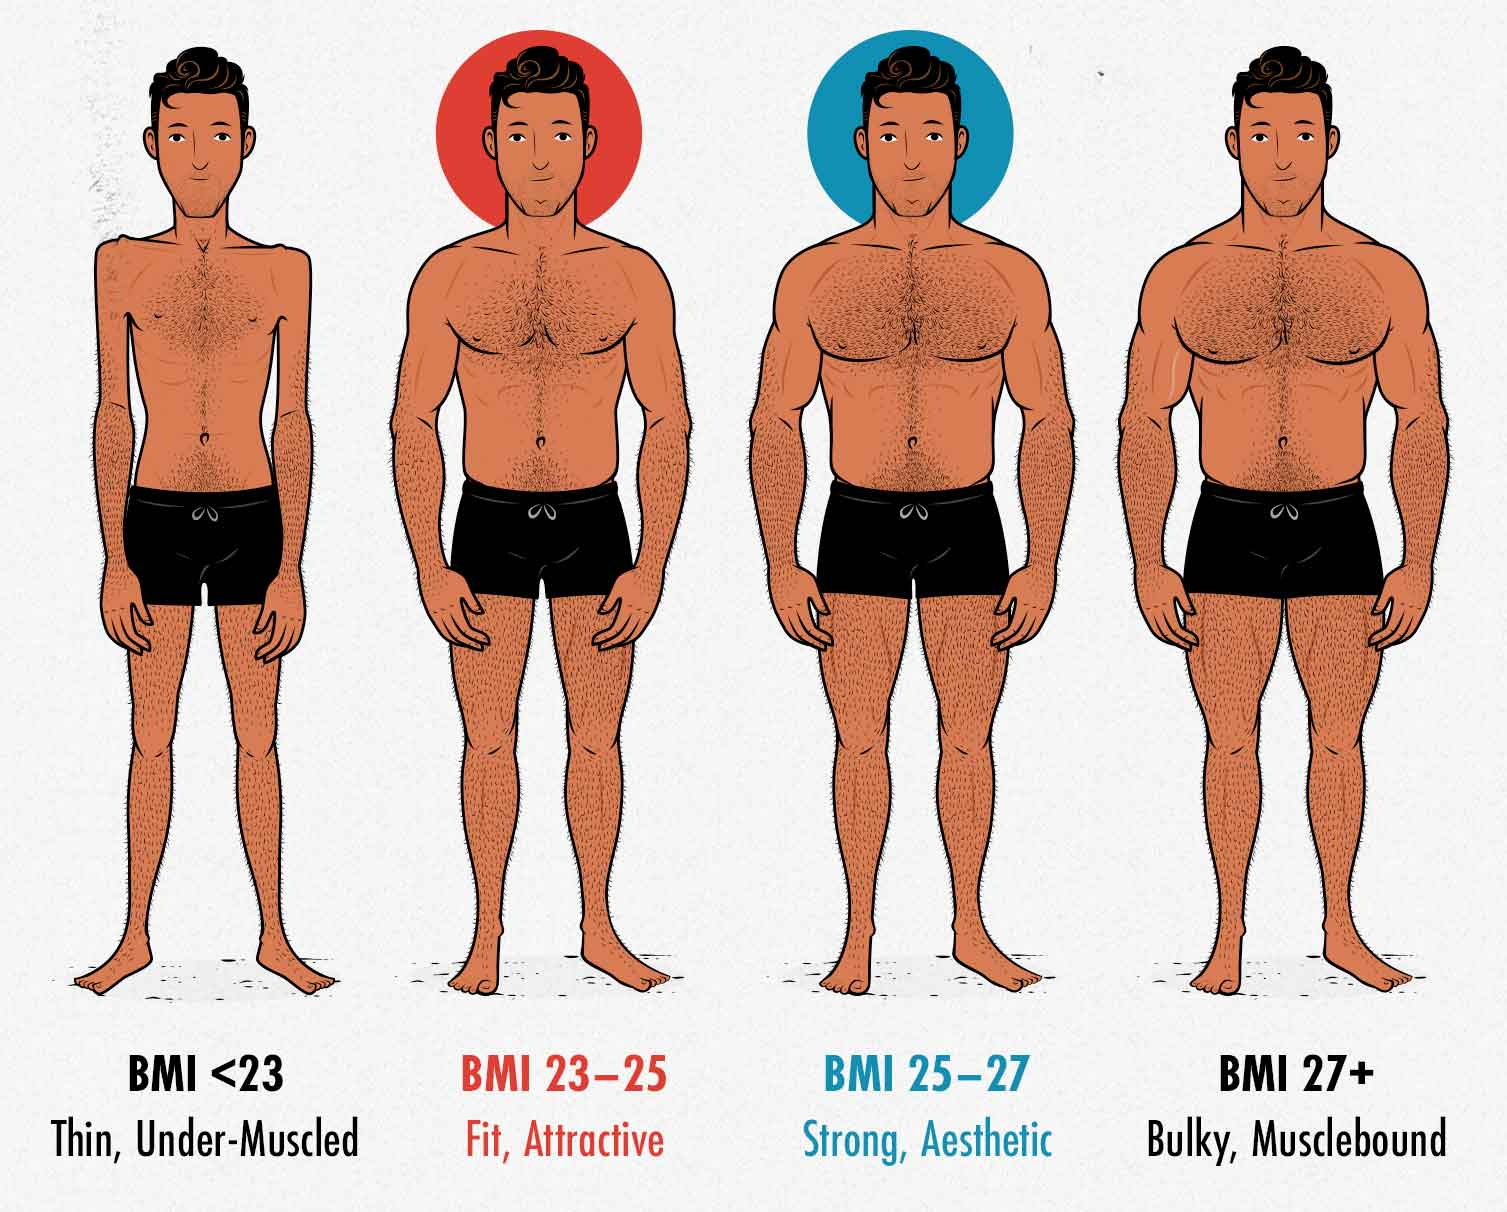 Diagram showing the most attractive and aesthetic male body weights and BMIs.